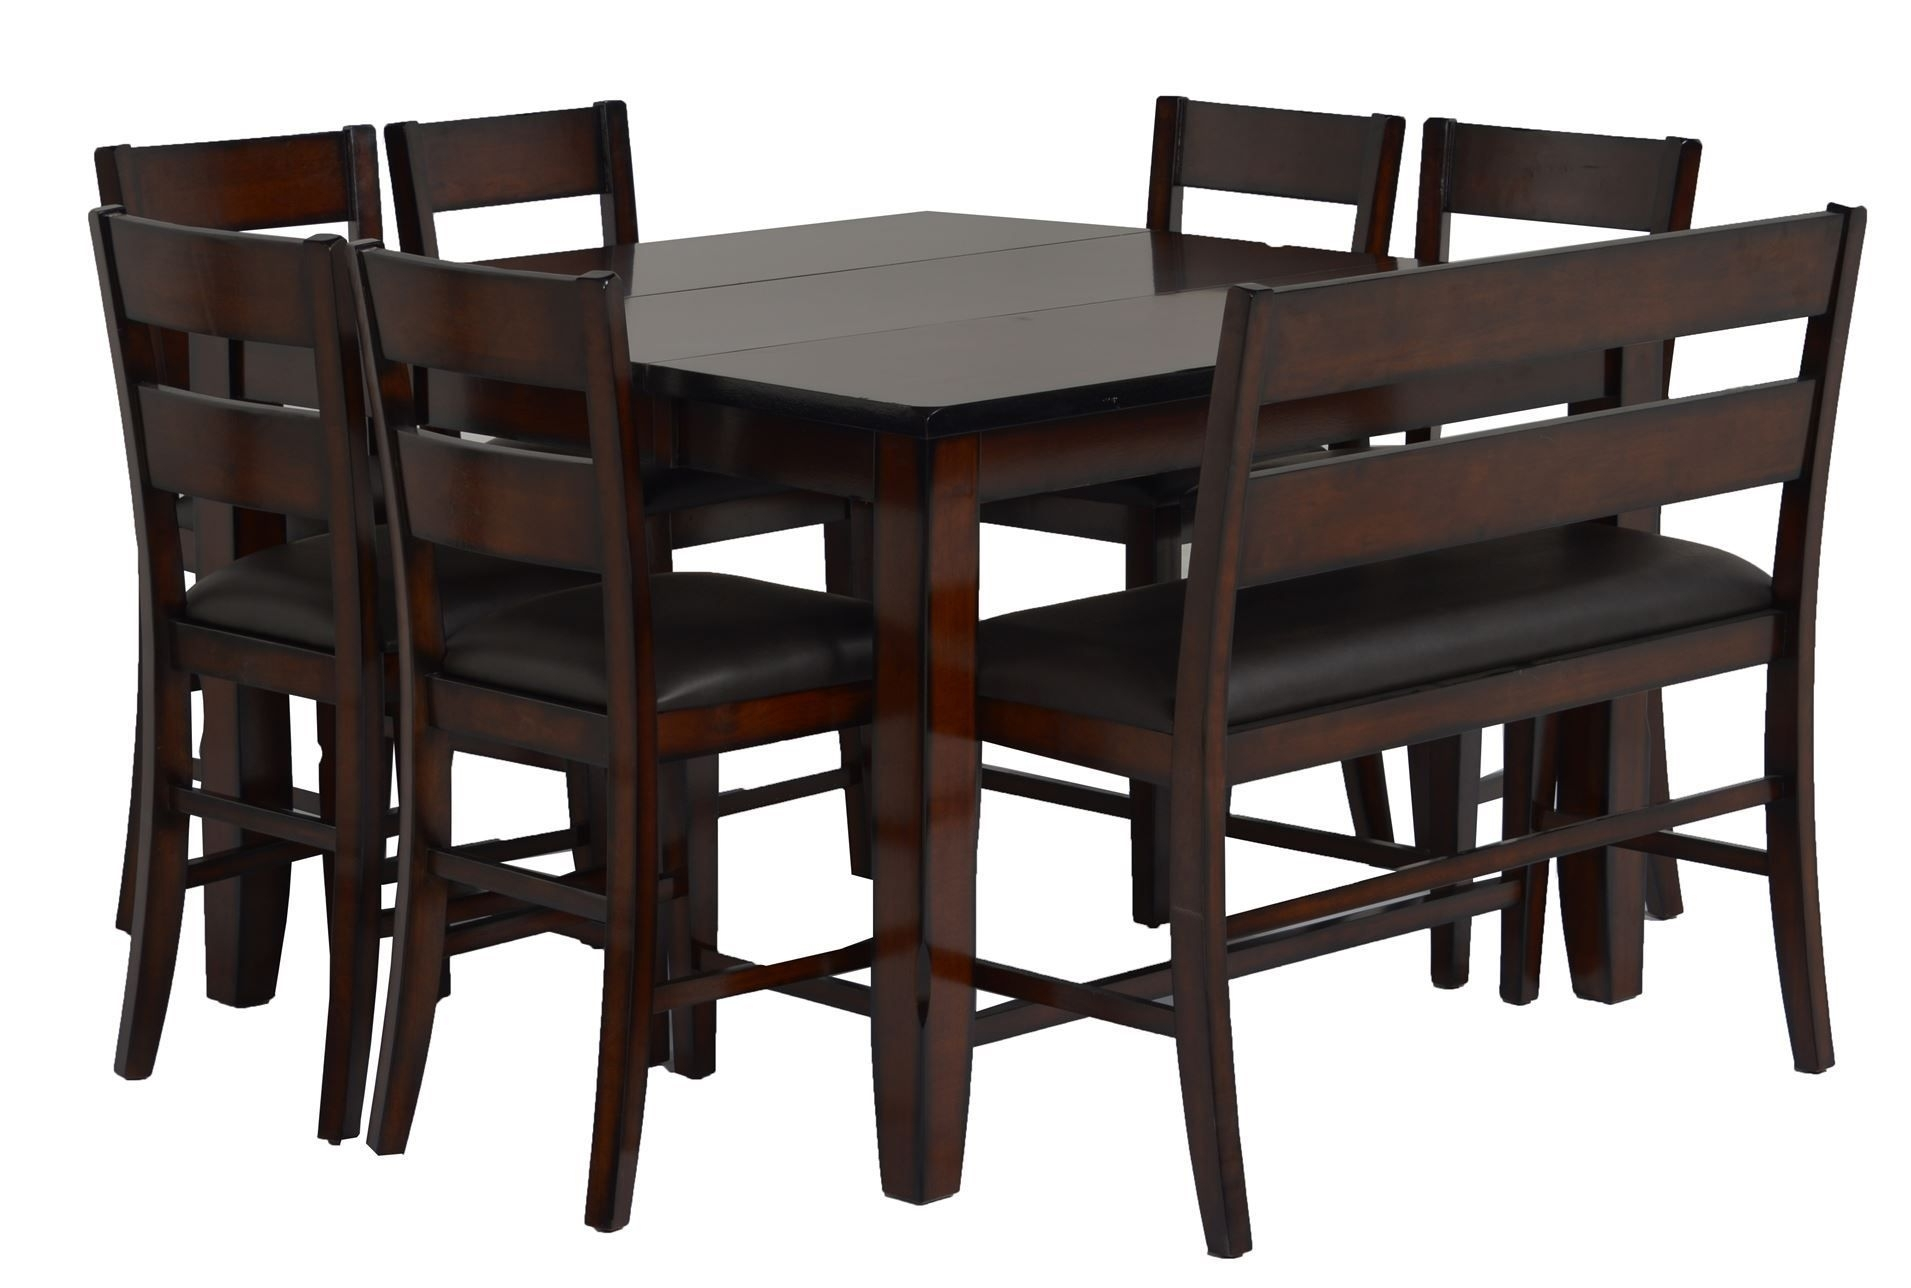 8 Piece Extension Counter Set, Rocco, Espresso, Kitchen & Dining Within Most Recently Released Rocco 7 Piece Extension Dining Sets (Image 1 of 20)